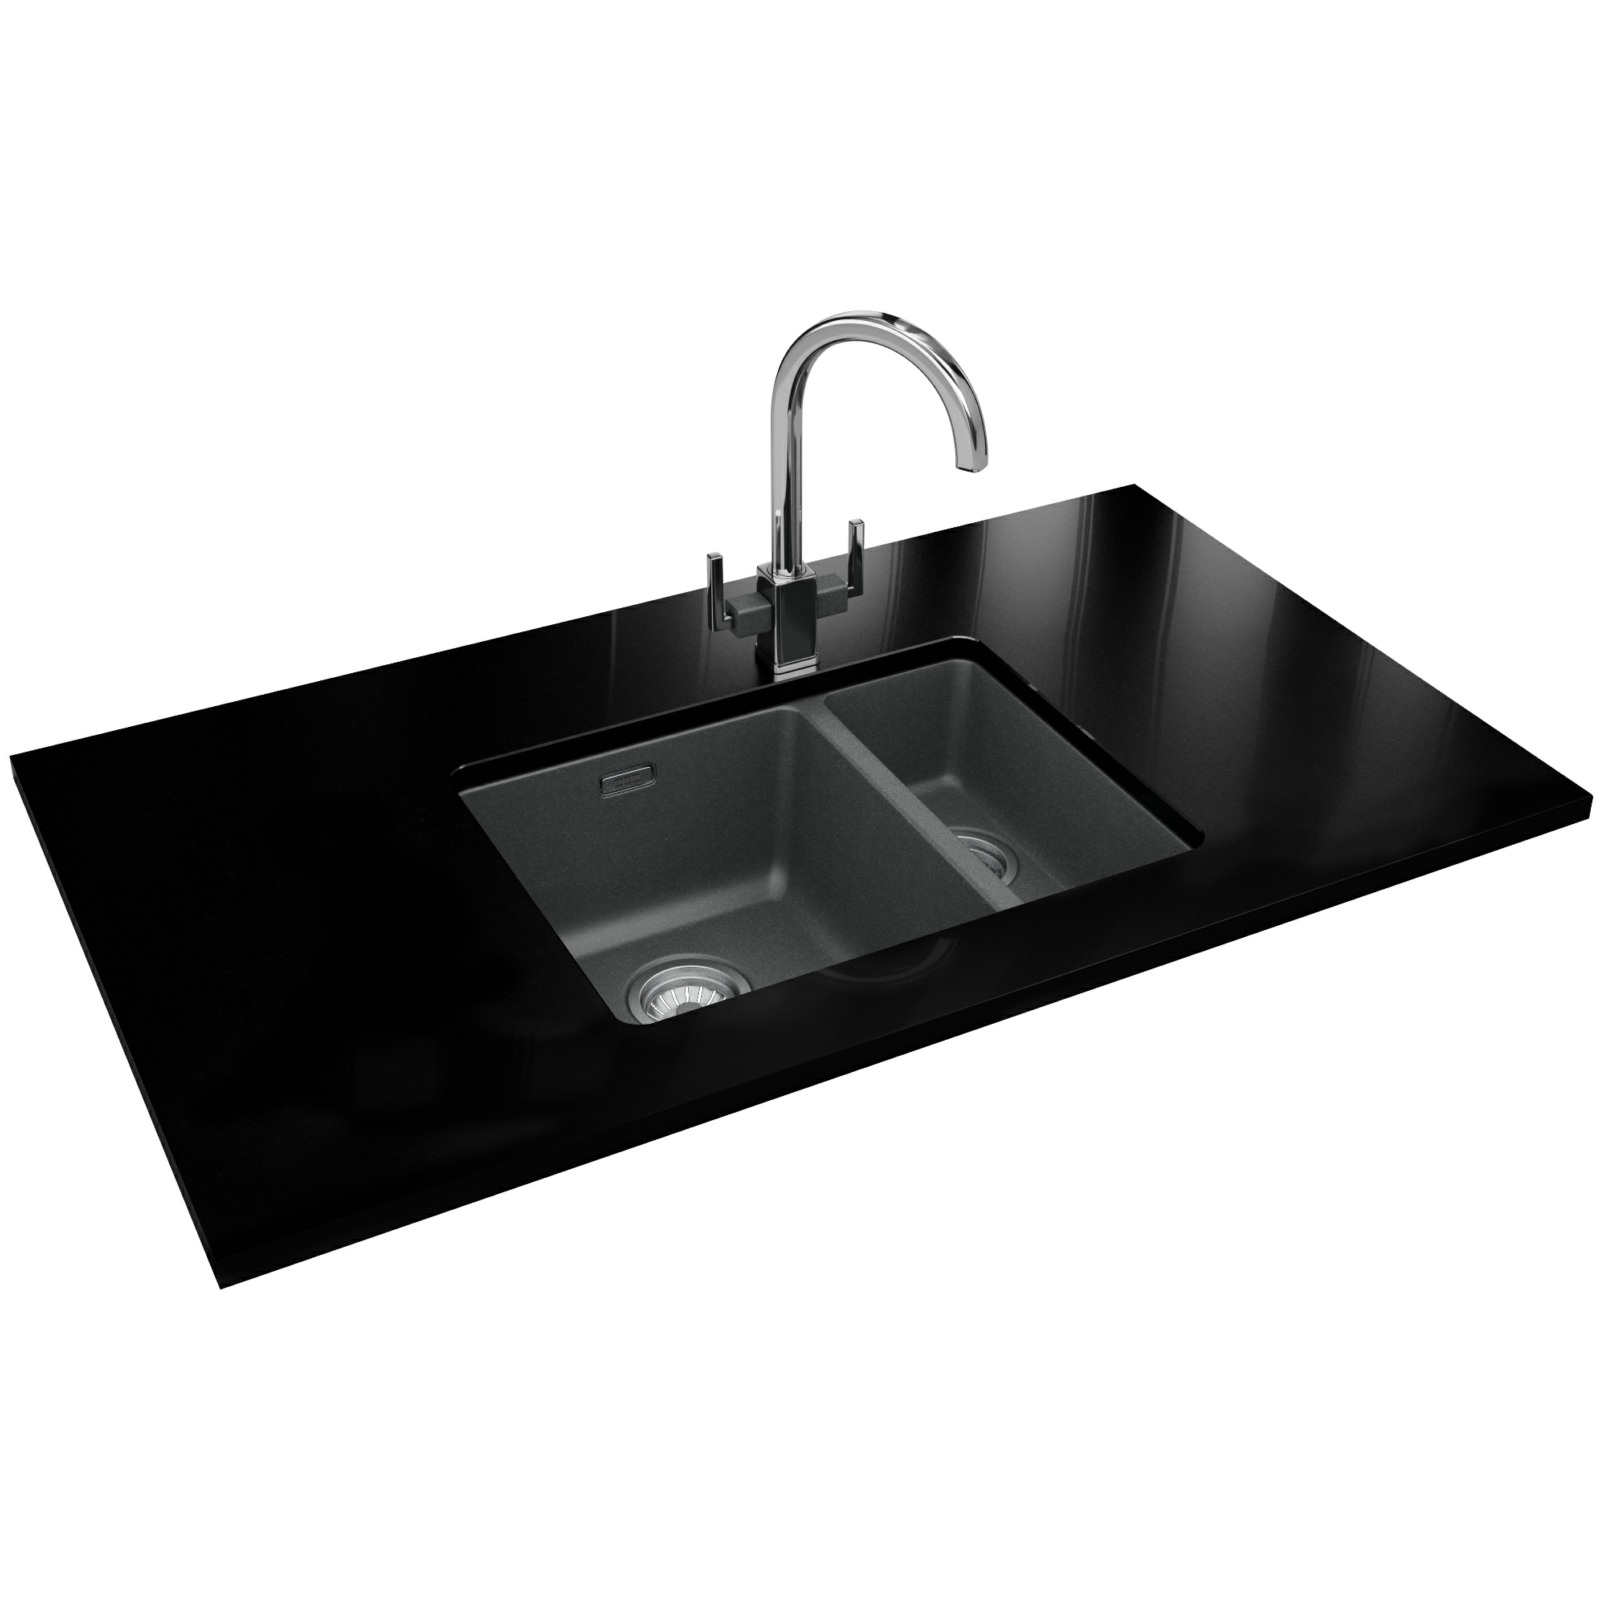 Franke Grey Sink : Franke Kubus Designer Pack KBG 160 Fragranite Stone Grey Sink And Tap ...